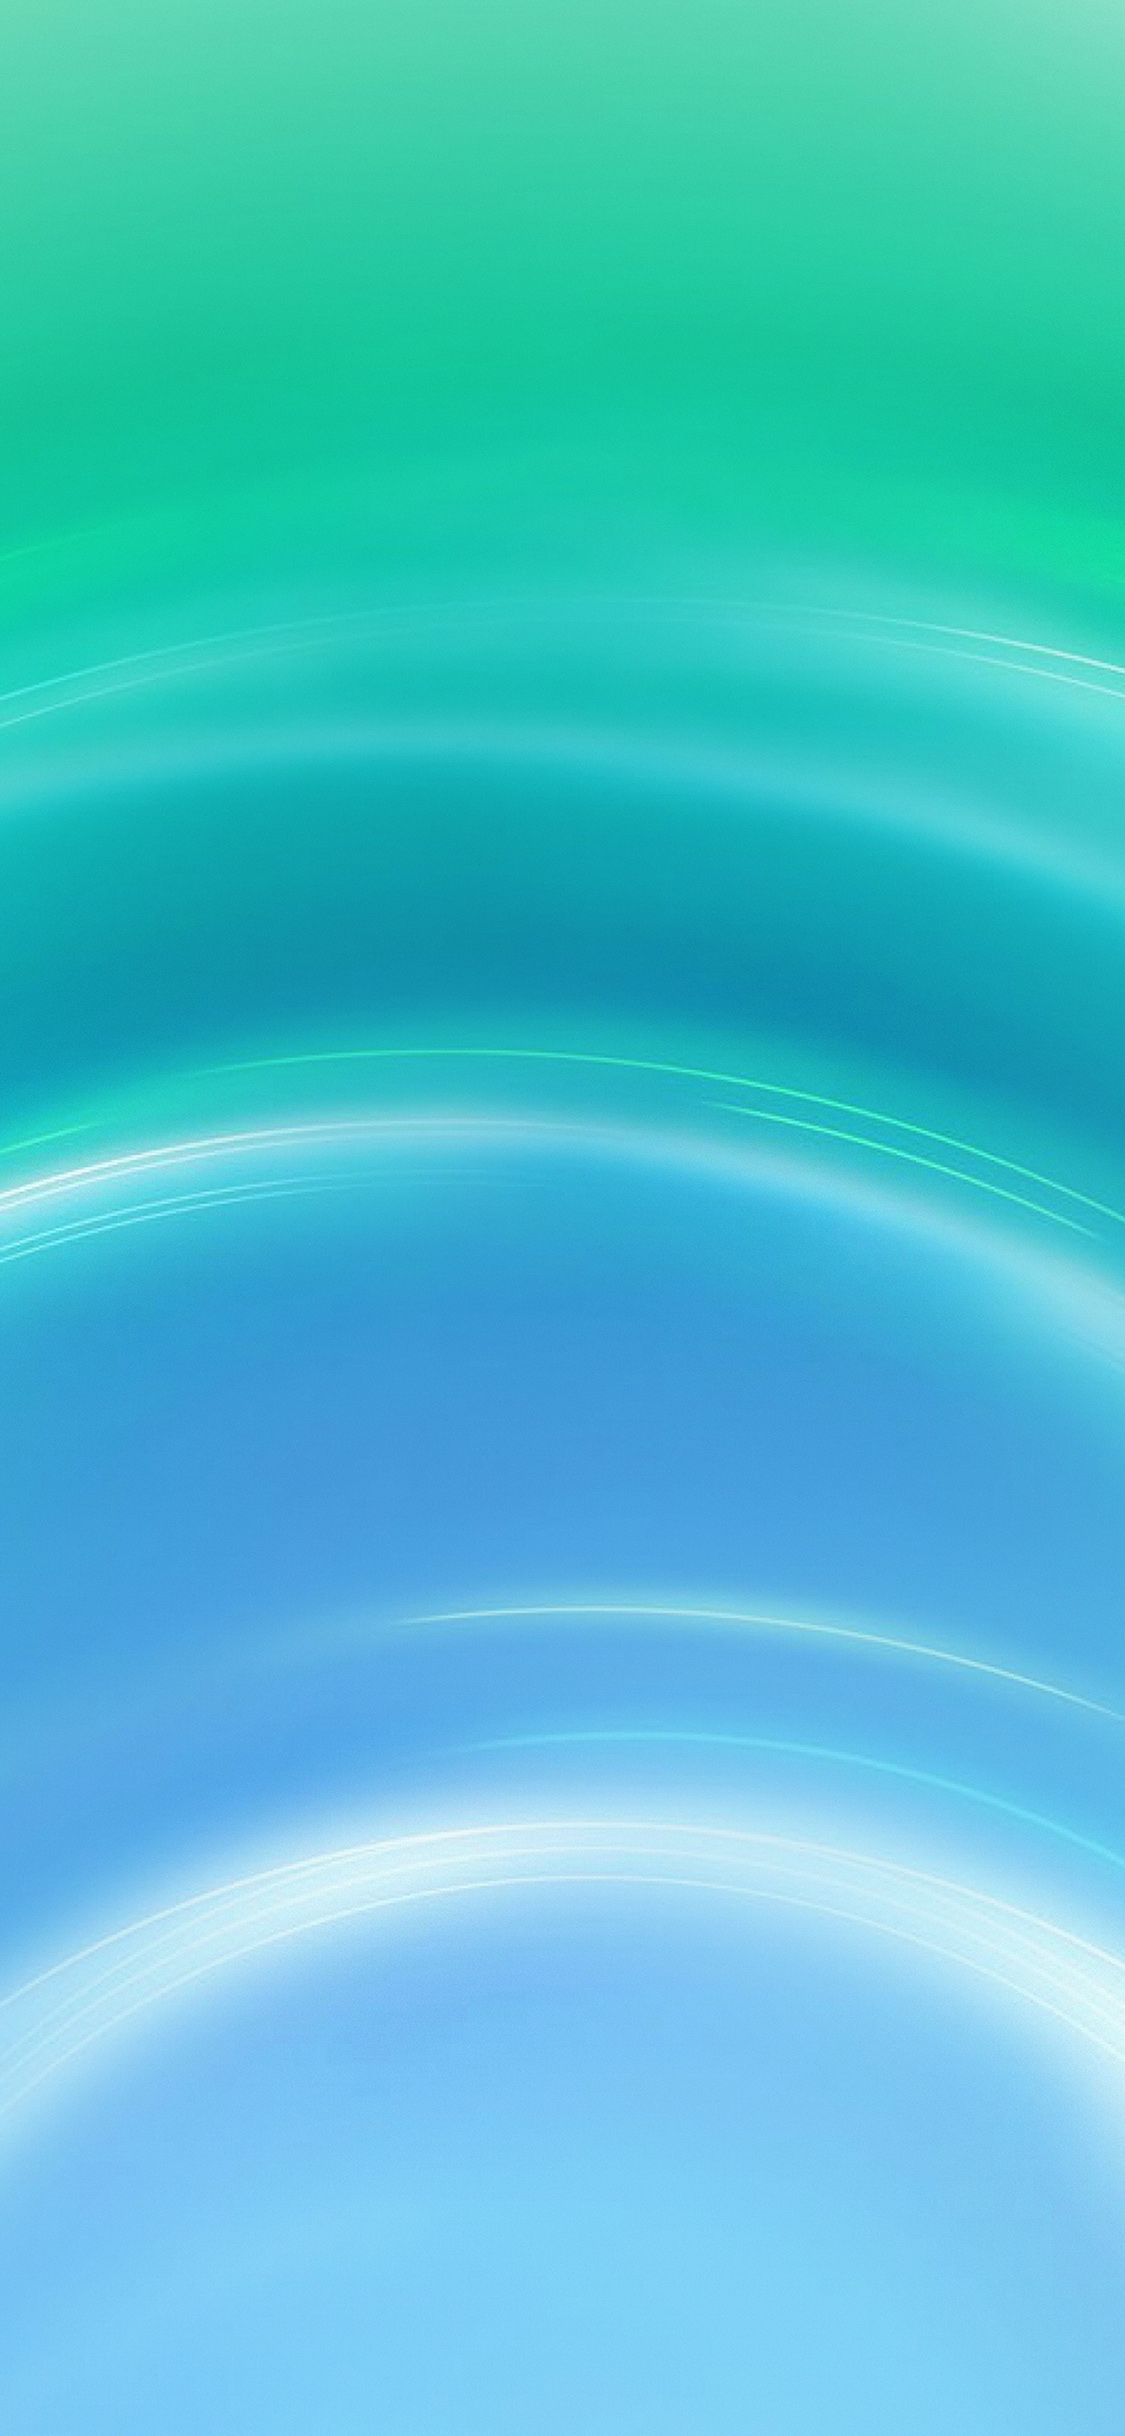 iPhoneXpapers.com-Apple-iPhone-wallpaper-vh10-circle-blue-green-abstract-light-pattern